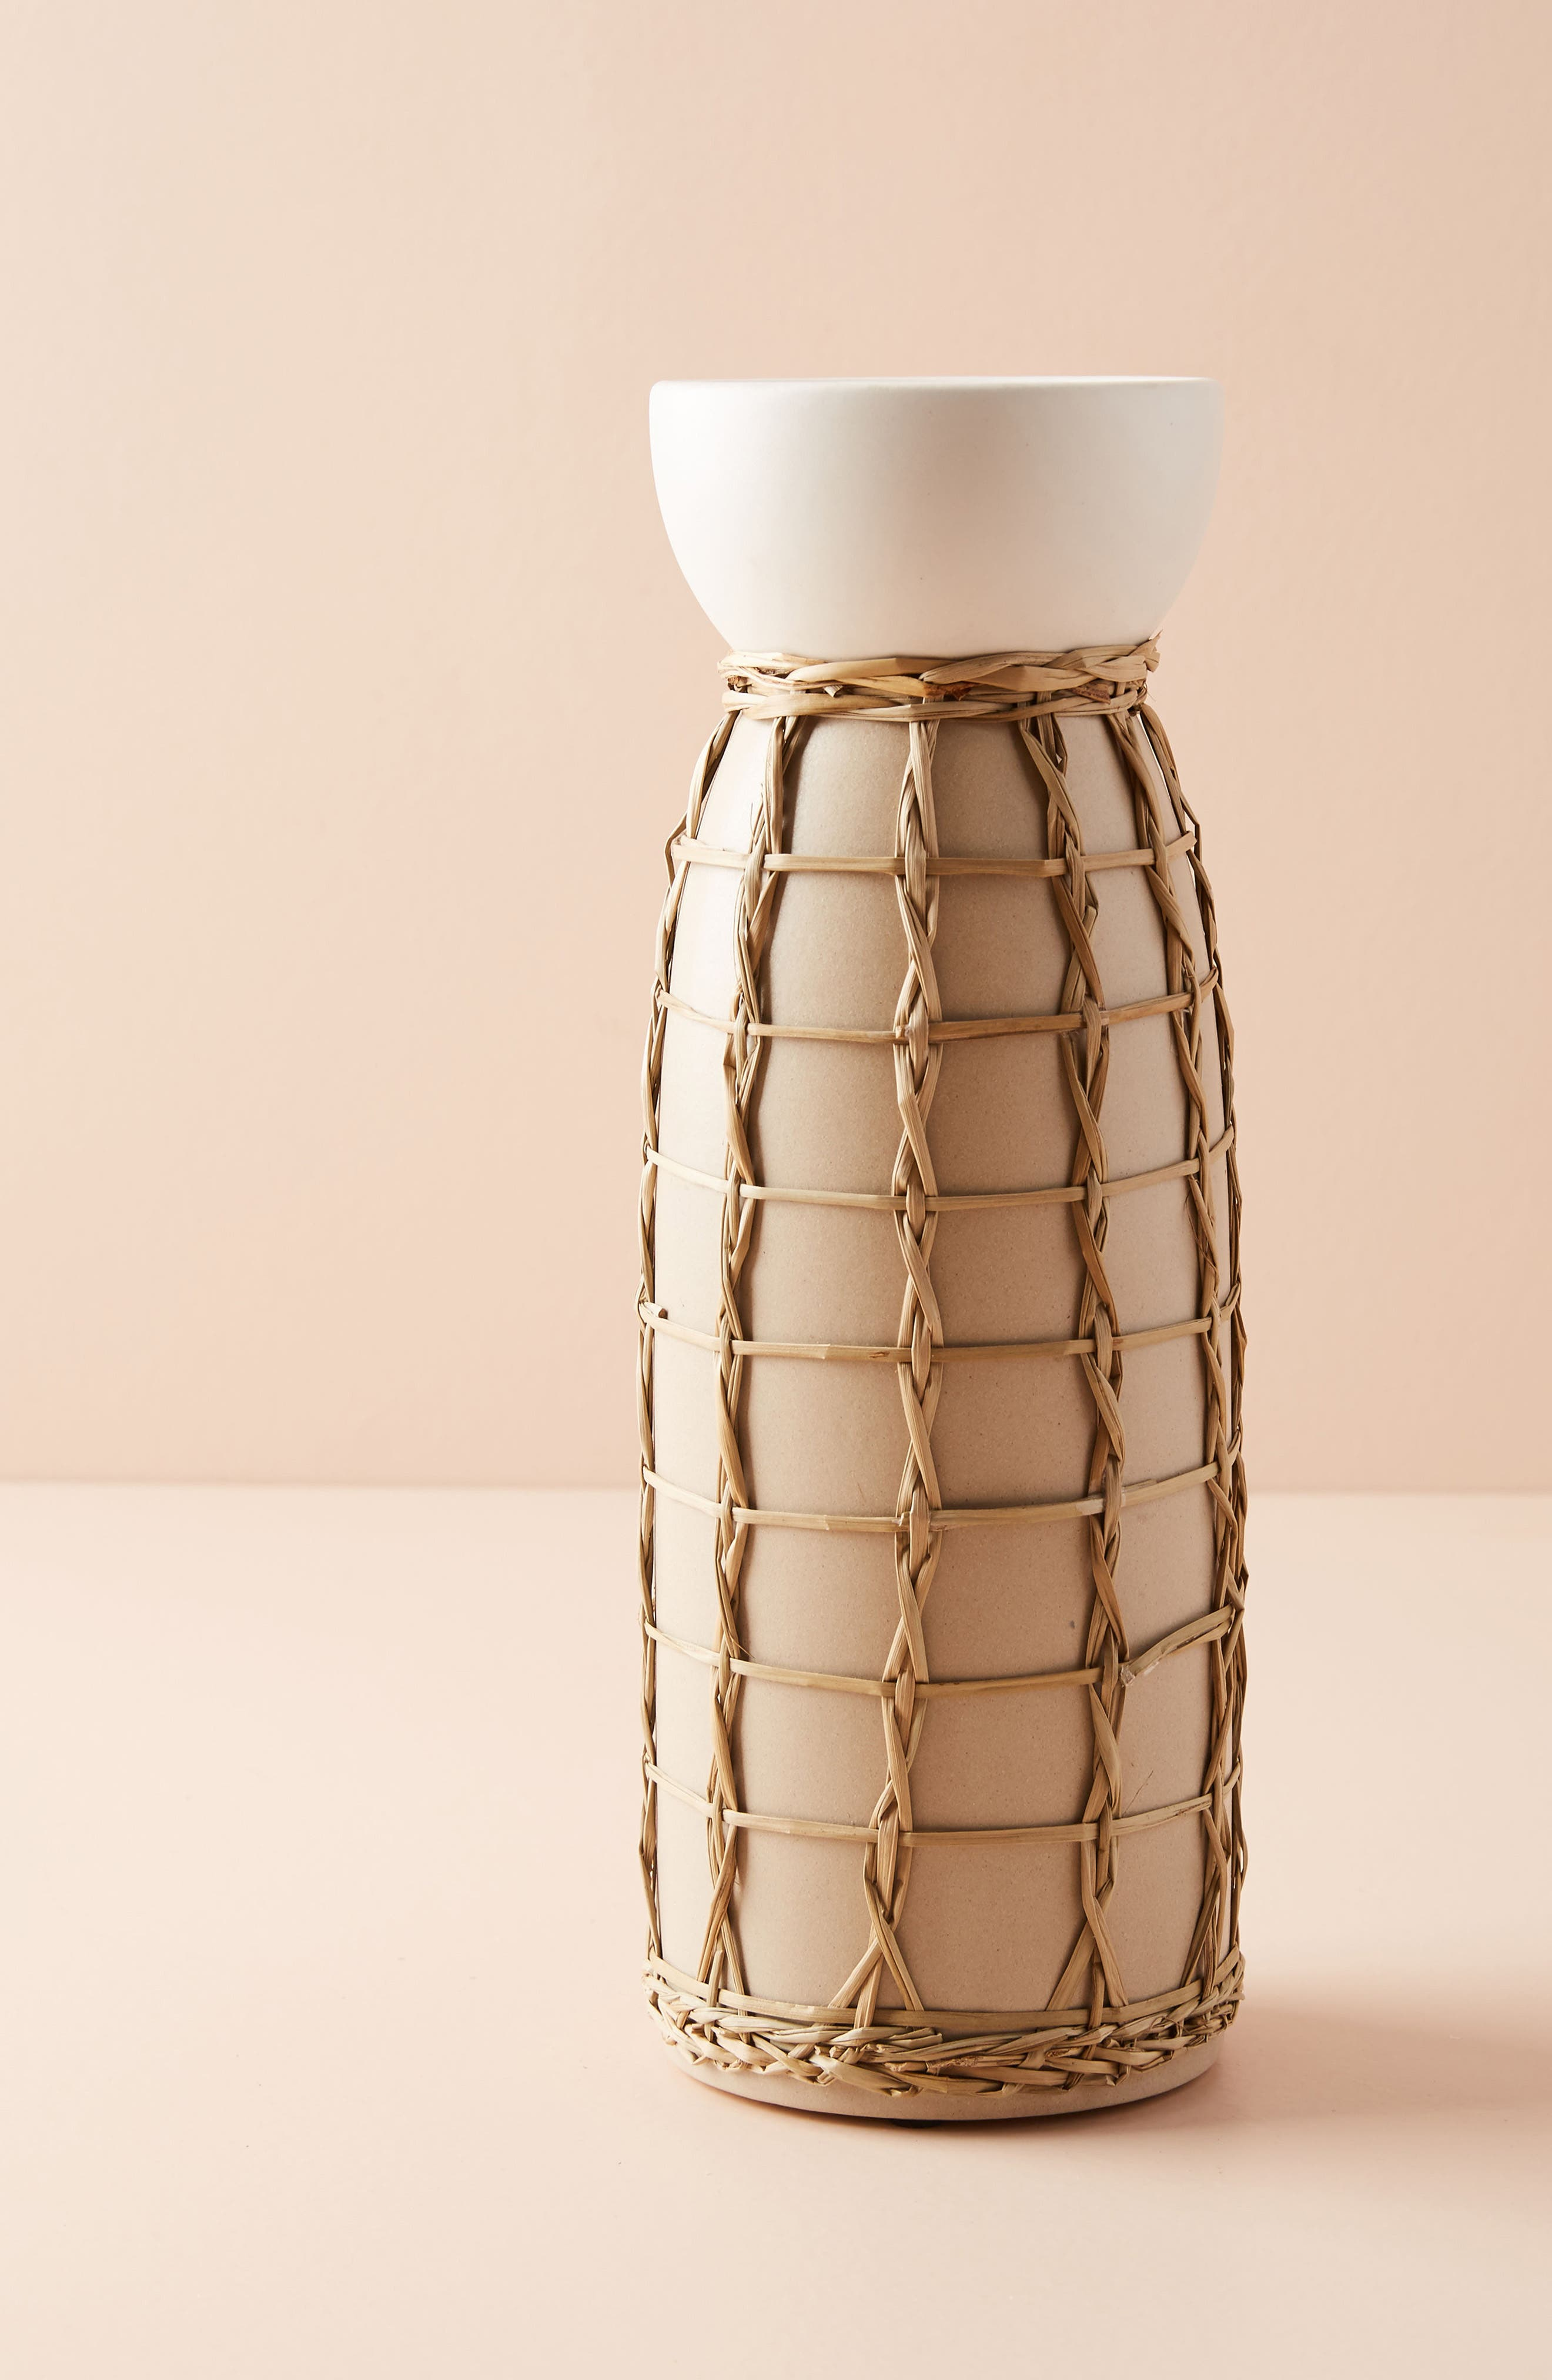 Anthropologie Wicker Pillar Candleholder